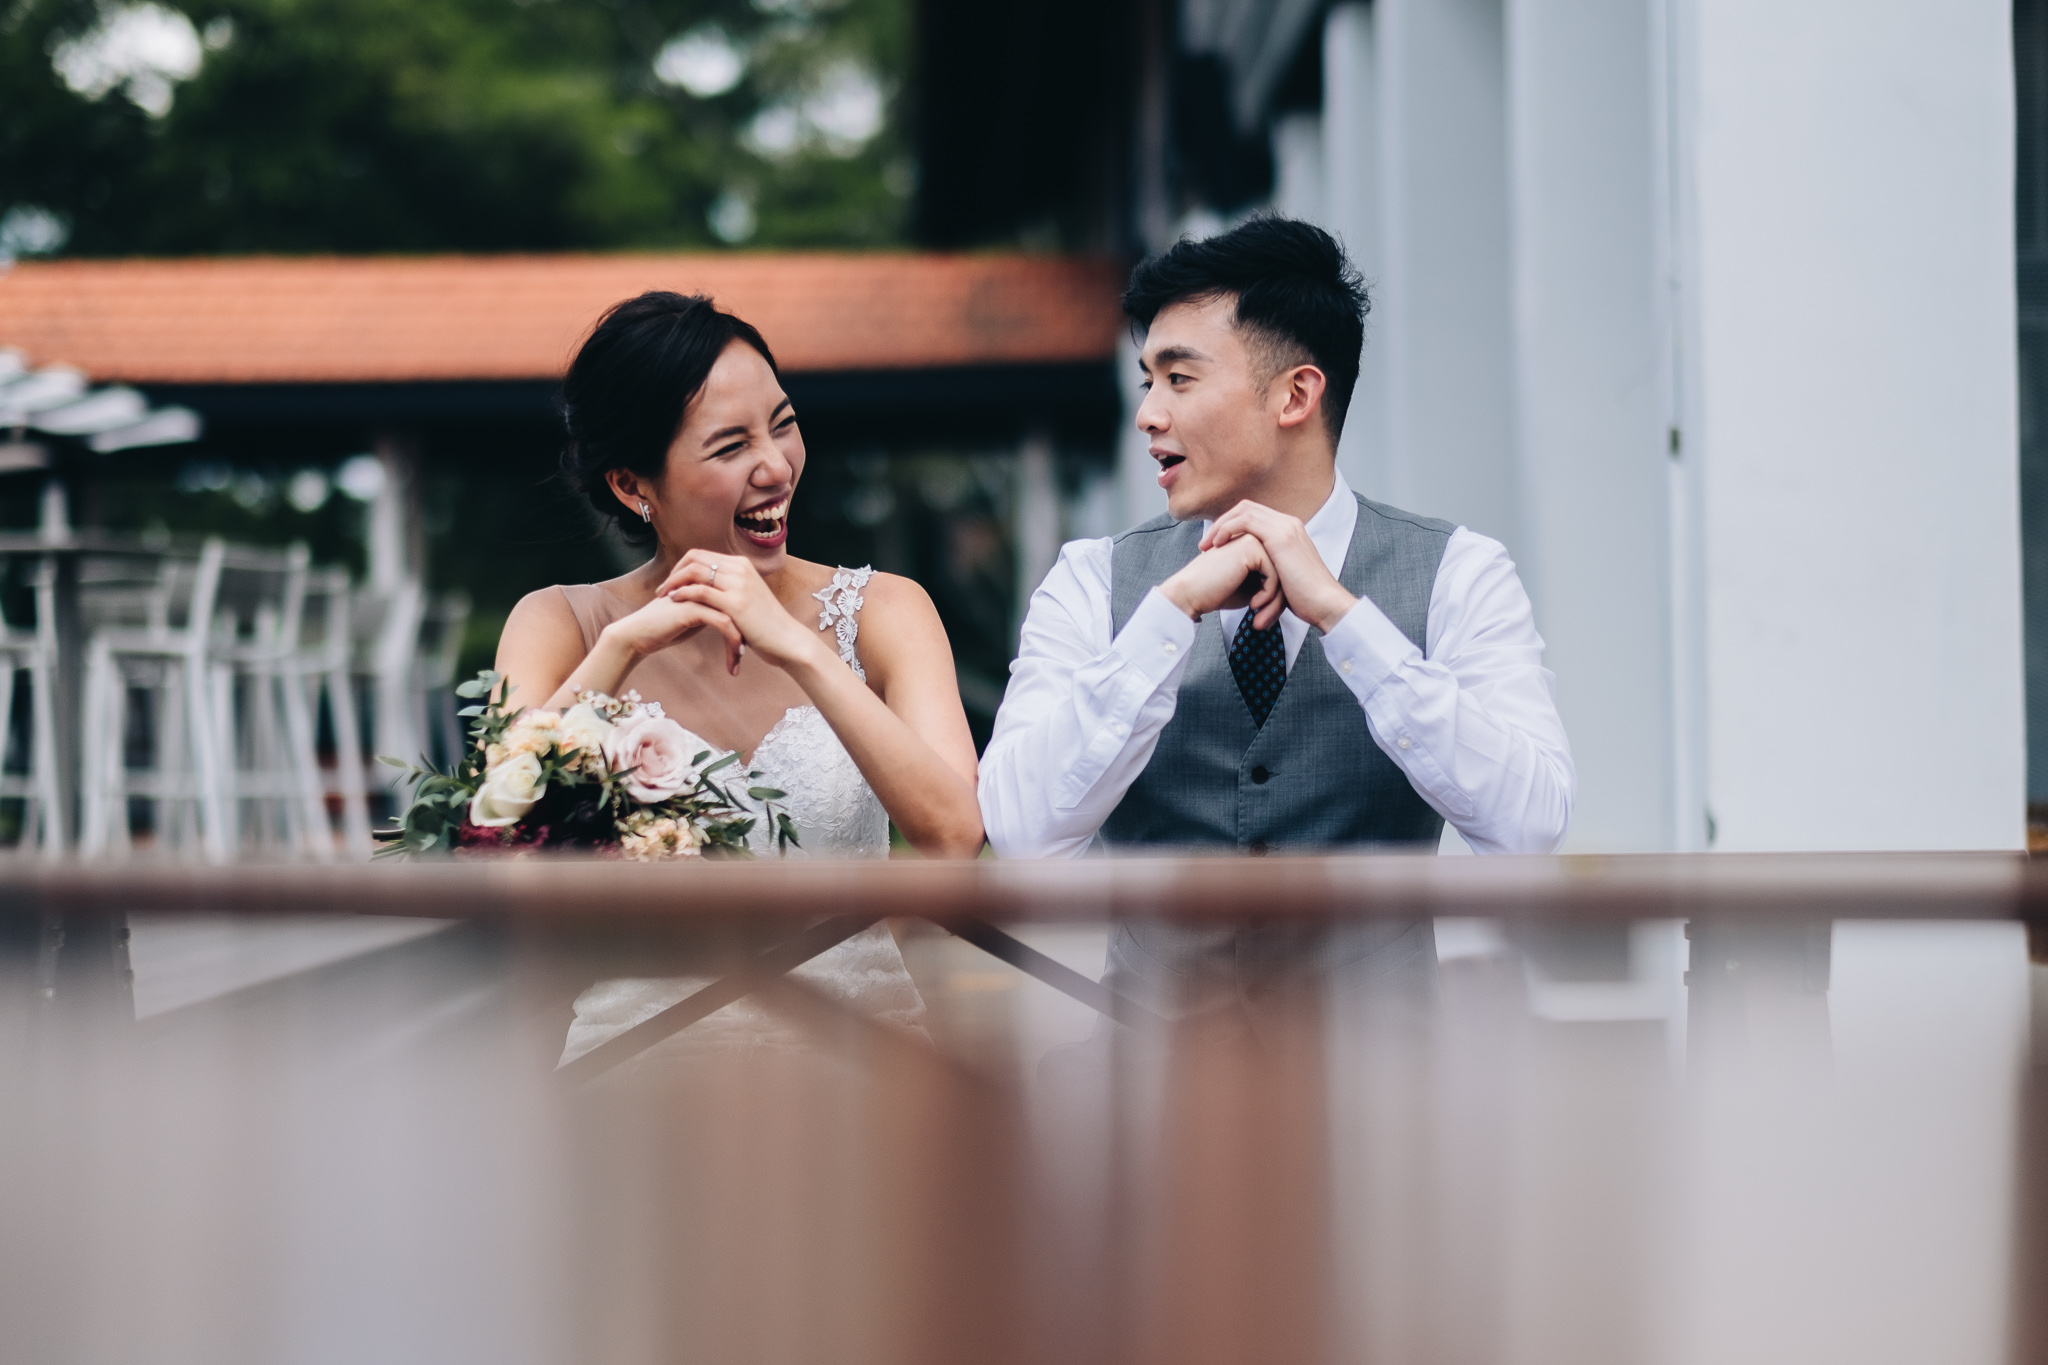 Kenneth & Lixin Pre-Wed (resized for sharing) - 069.jpg